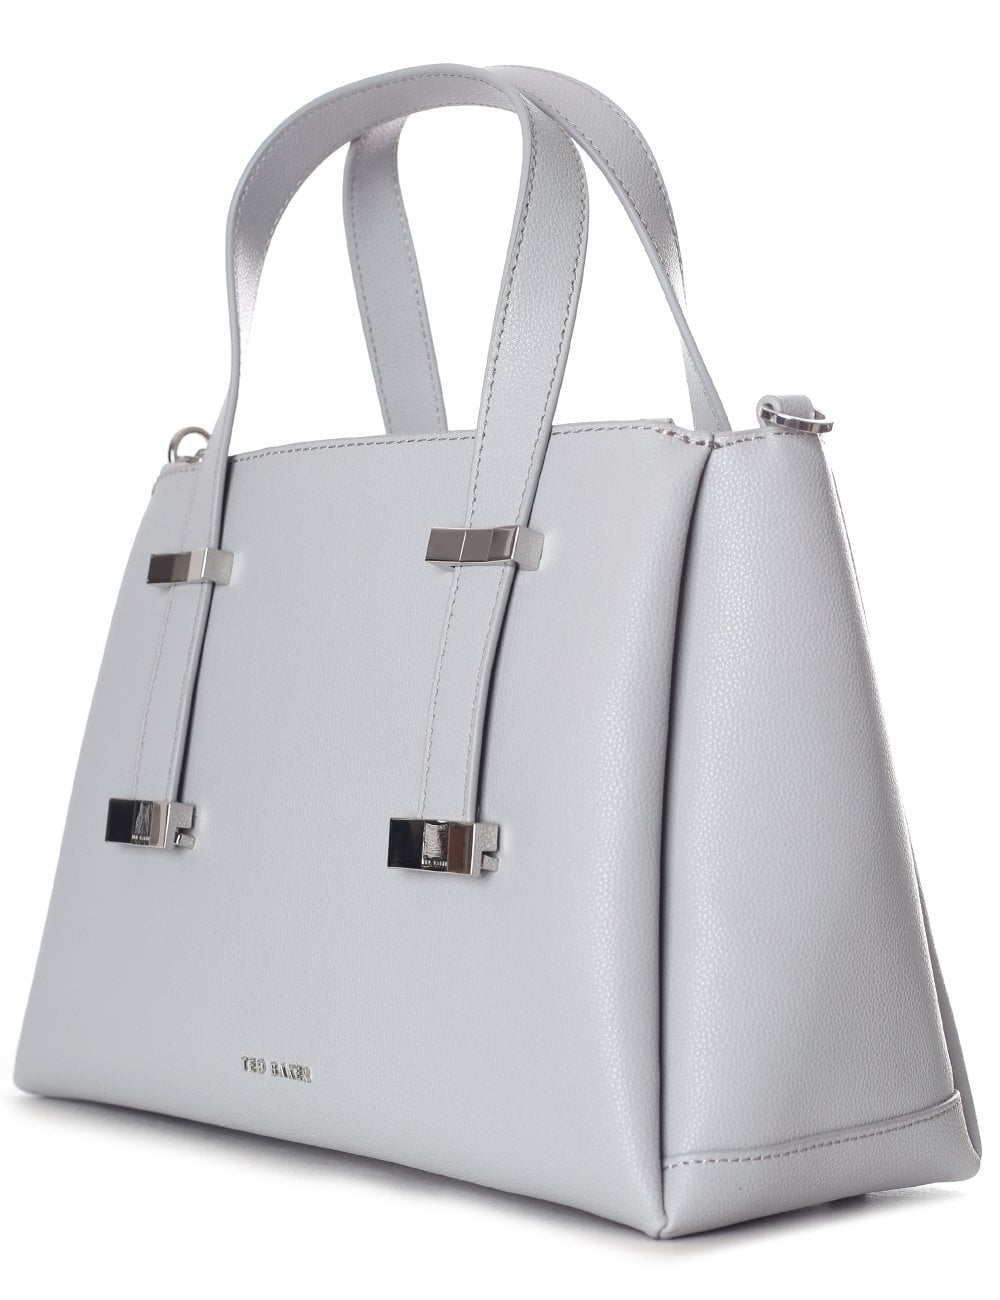 030d82a458fa Ted Baker Women s Julieet Bow Adjustable Handle Small Tote